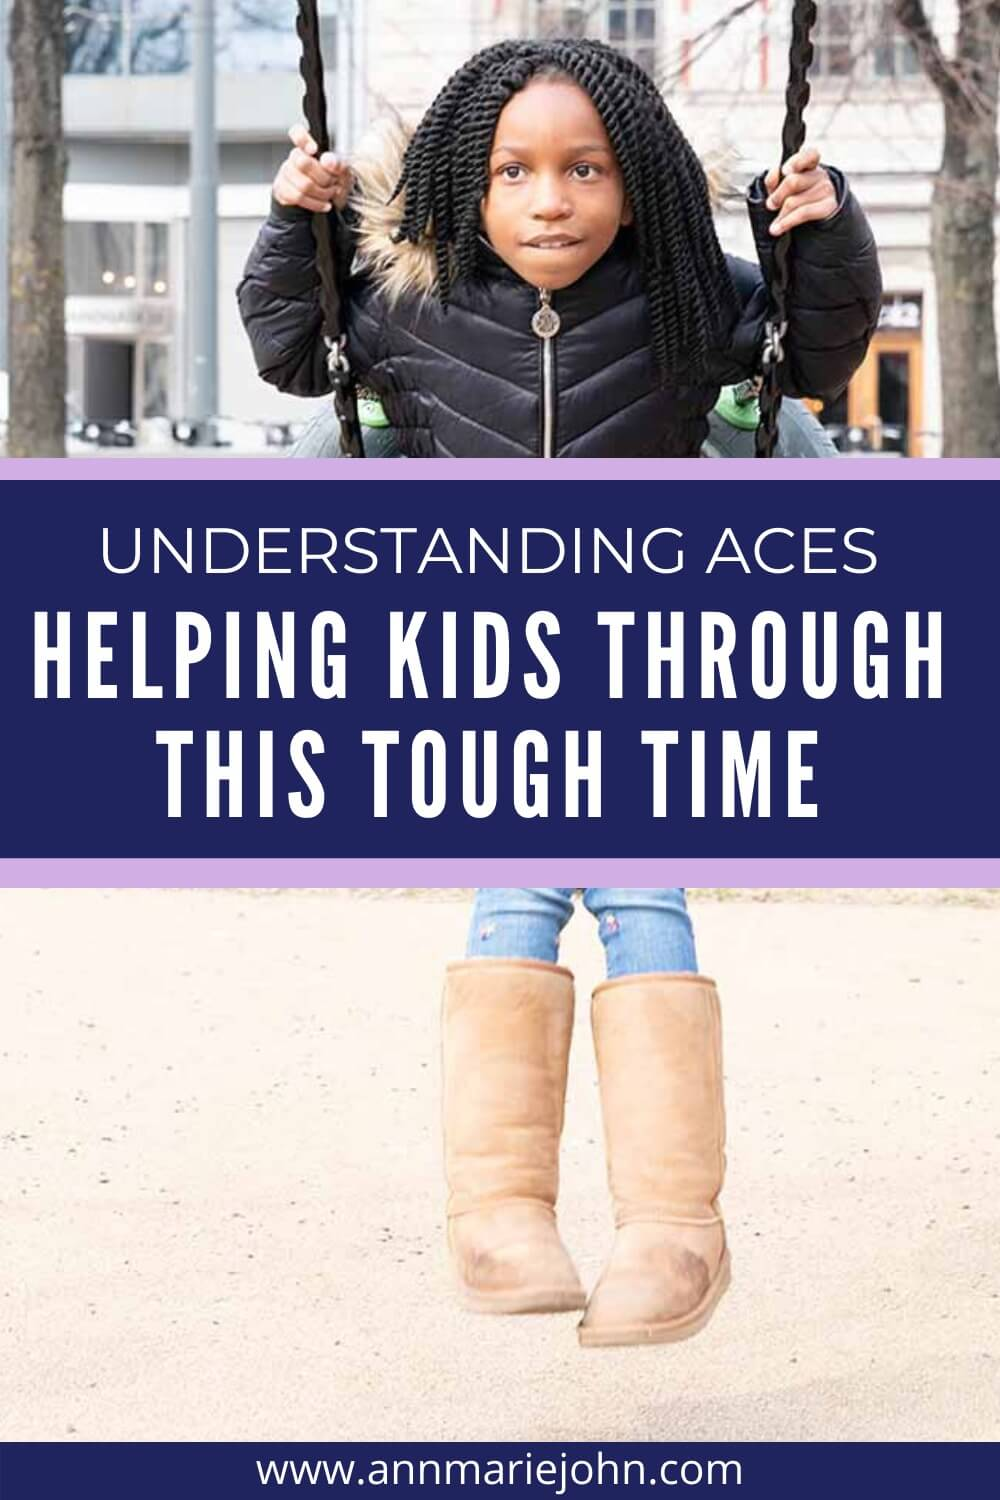 Understanding ACEs - Helping Kids Through This Tough Time